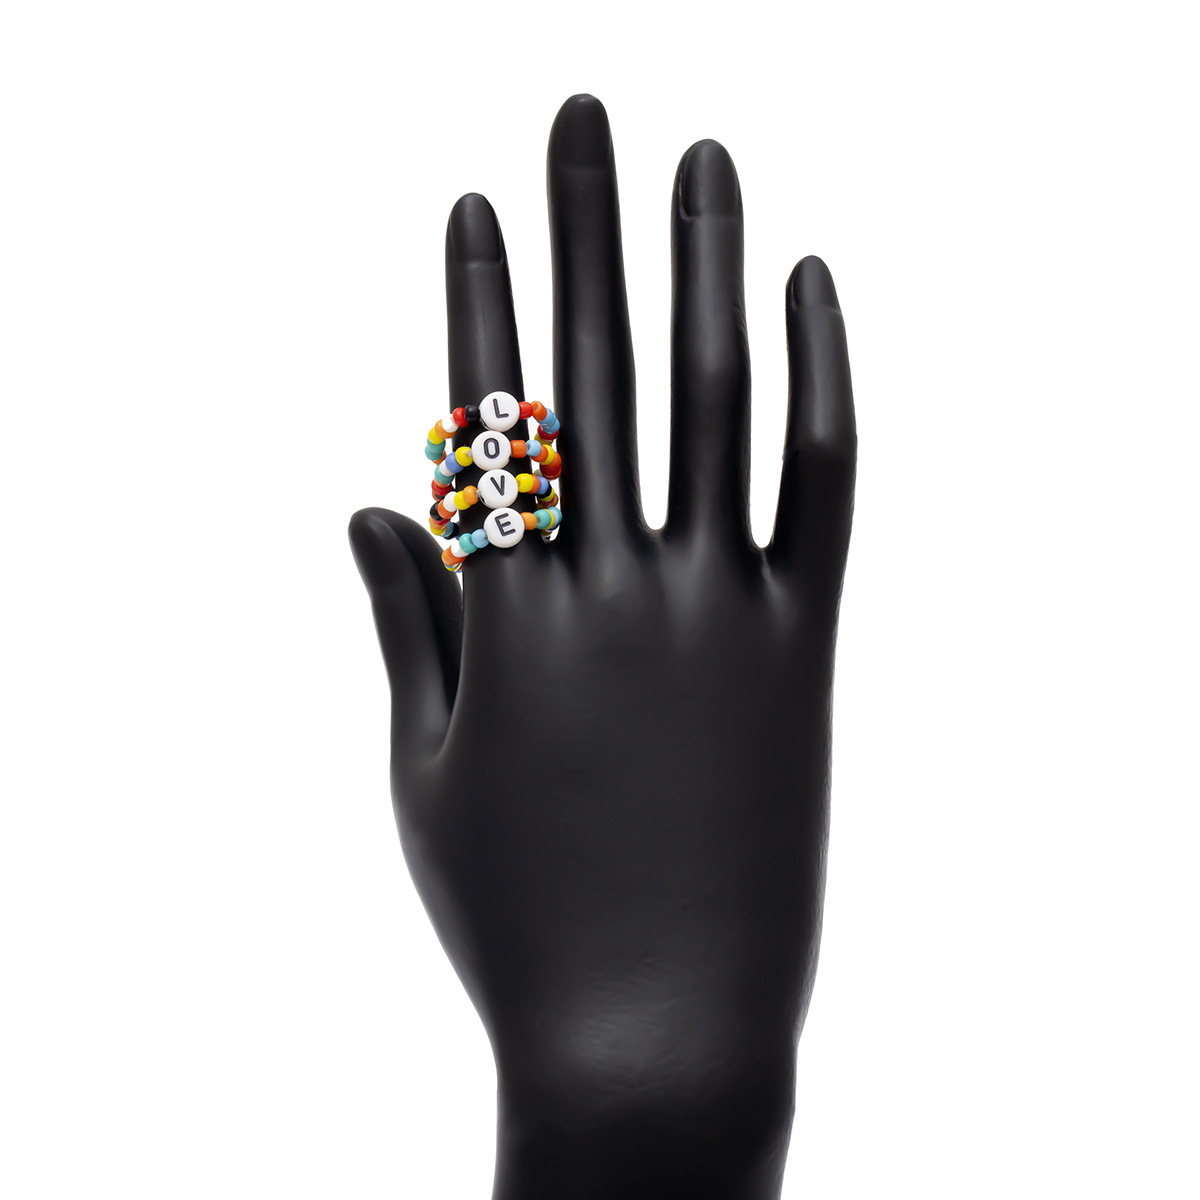 Newest Fashion Jewelry Creative Love Letter Ring for Girls Colorful Acrylic Cluster Rings Handmade